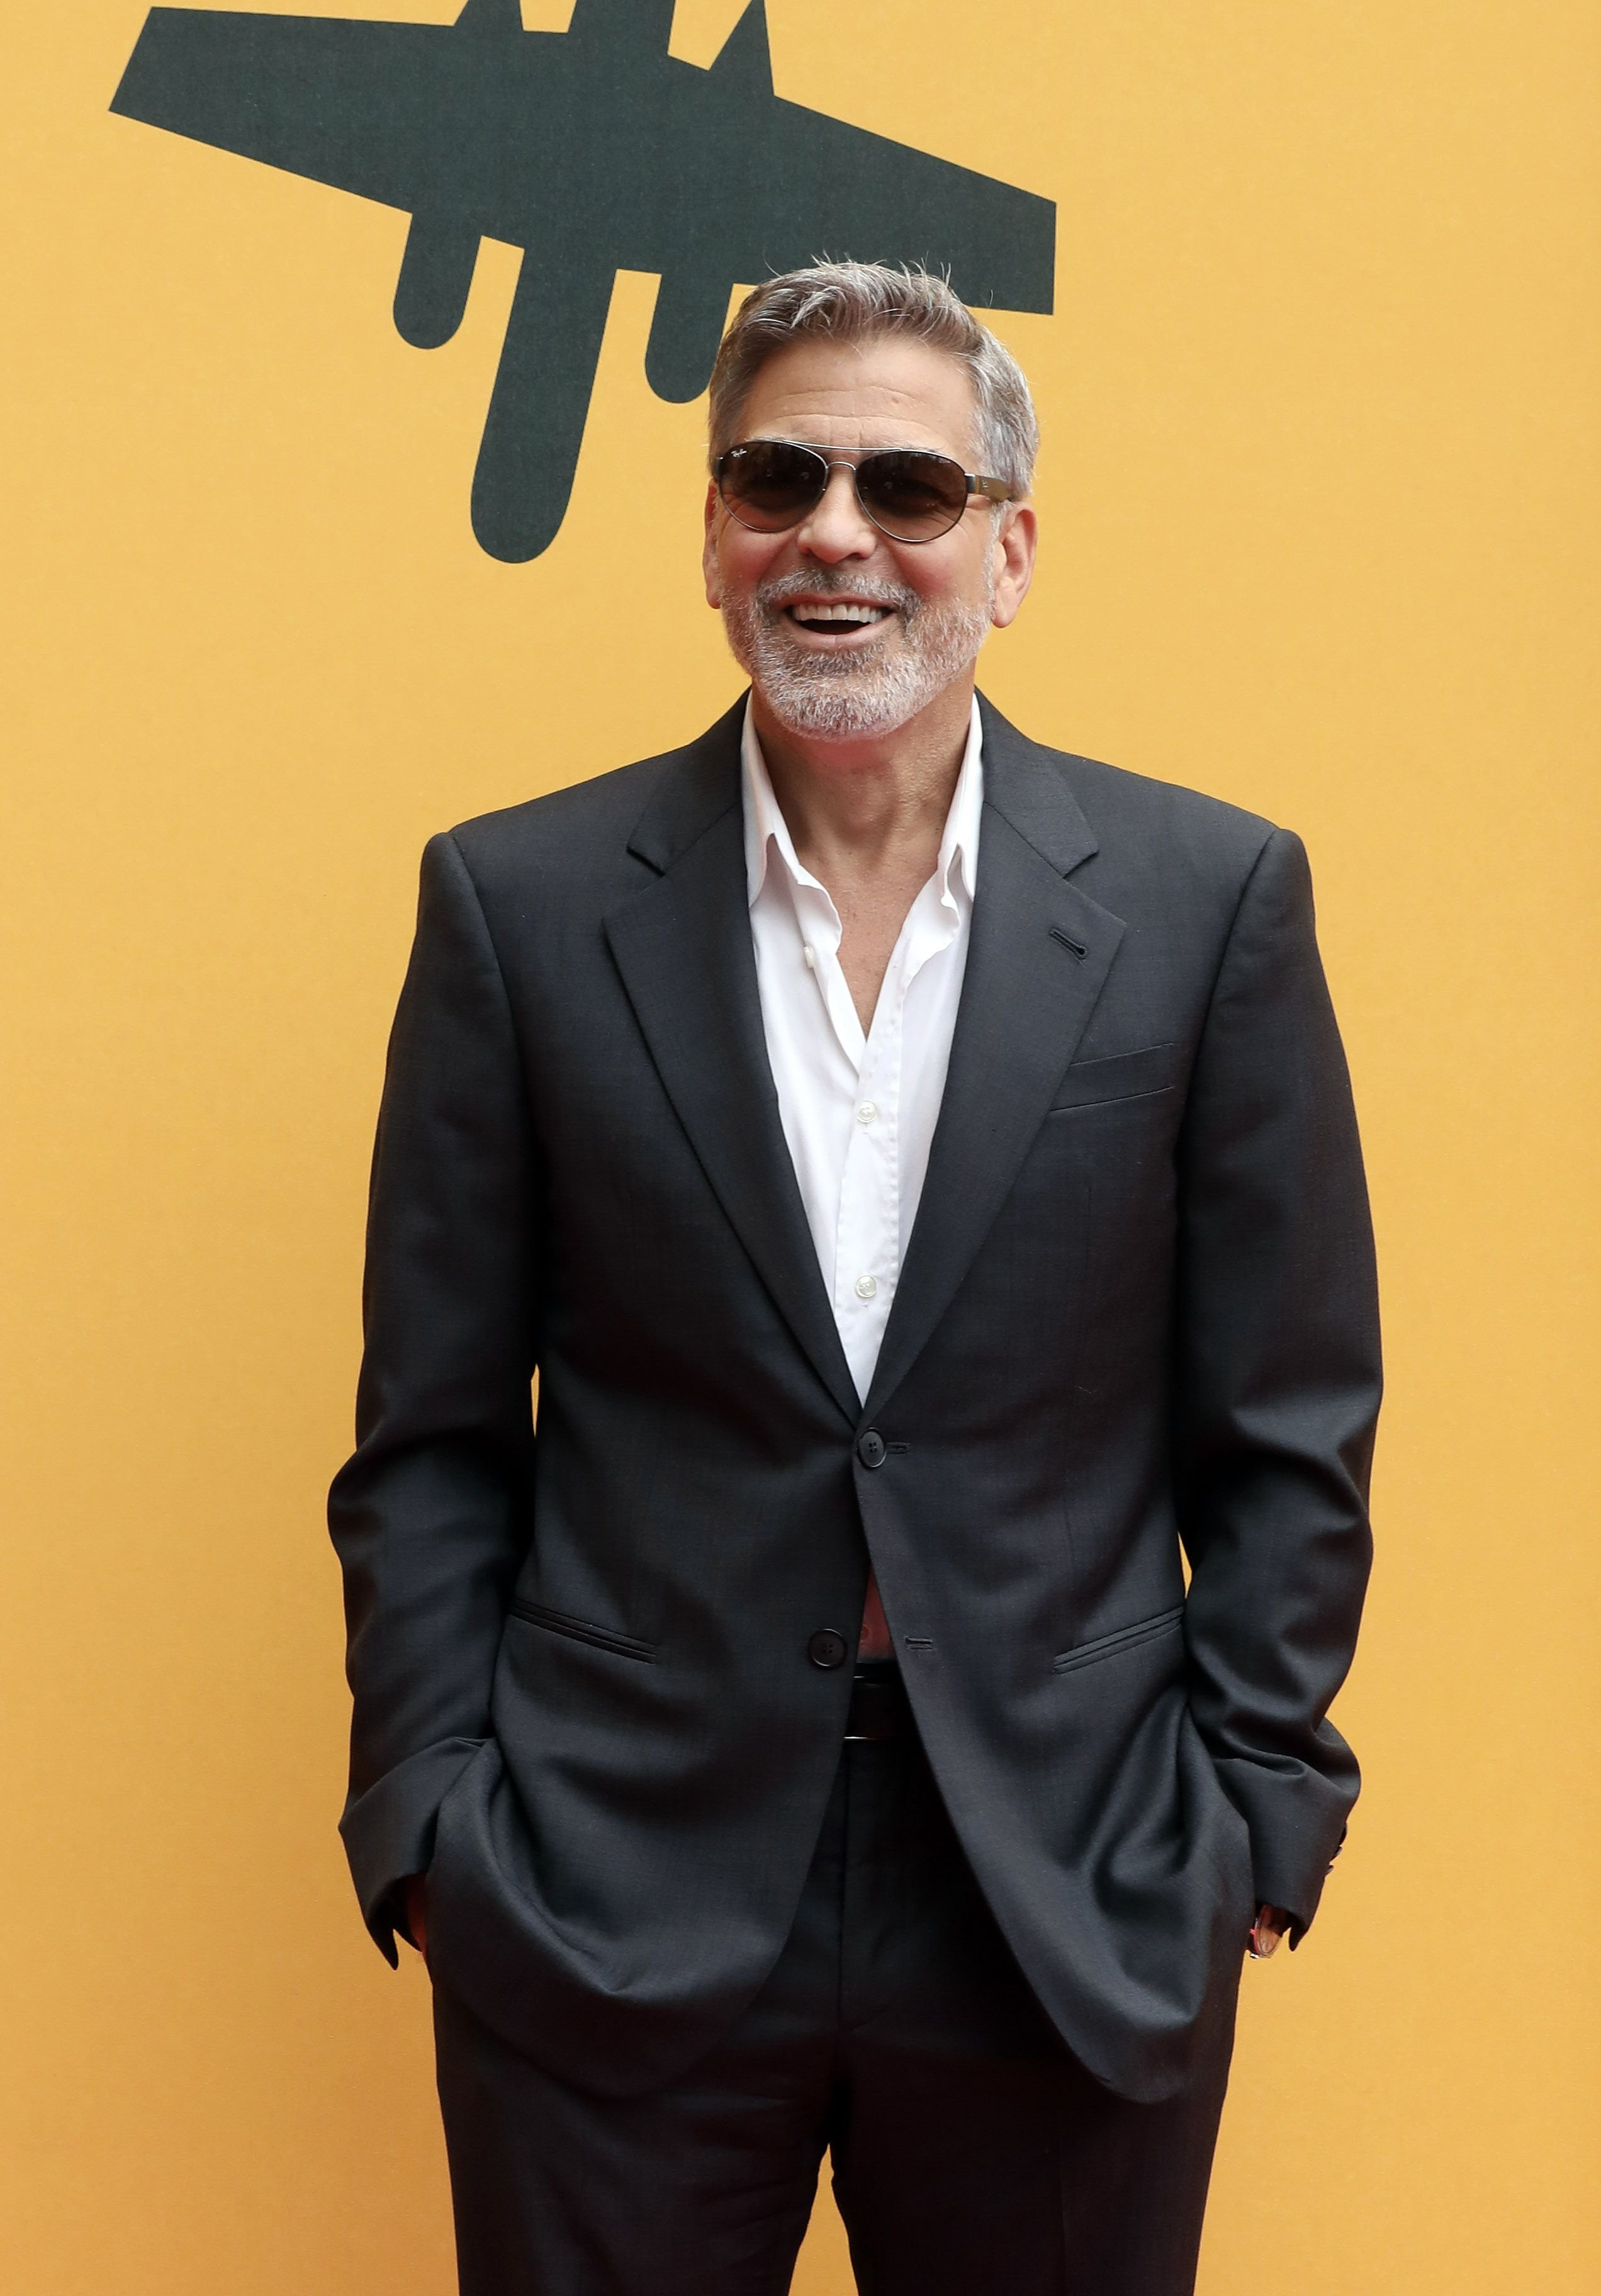 """George Clooney attends the """"Catch-22"""" photocall at The Space Moderno Cinema on May 13, 2019 